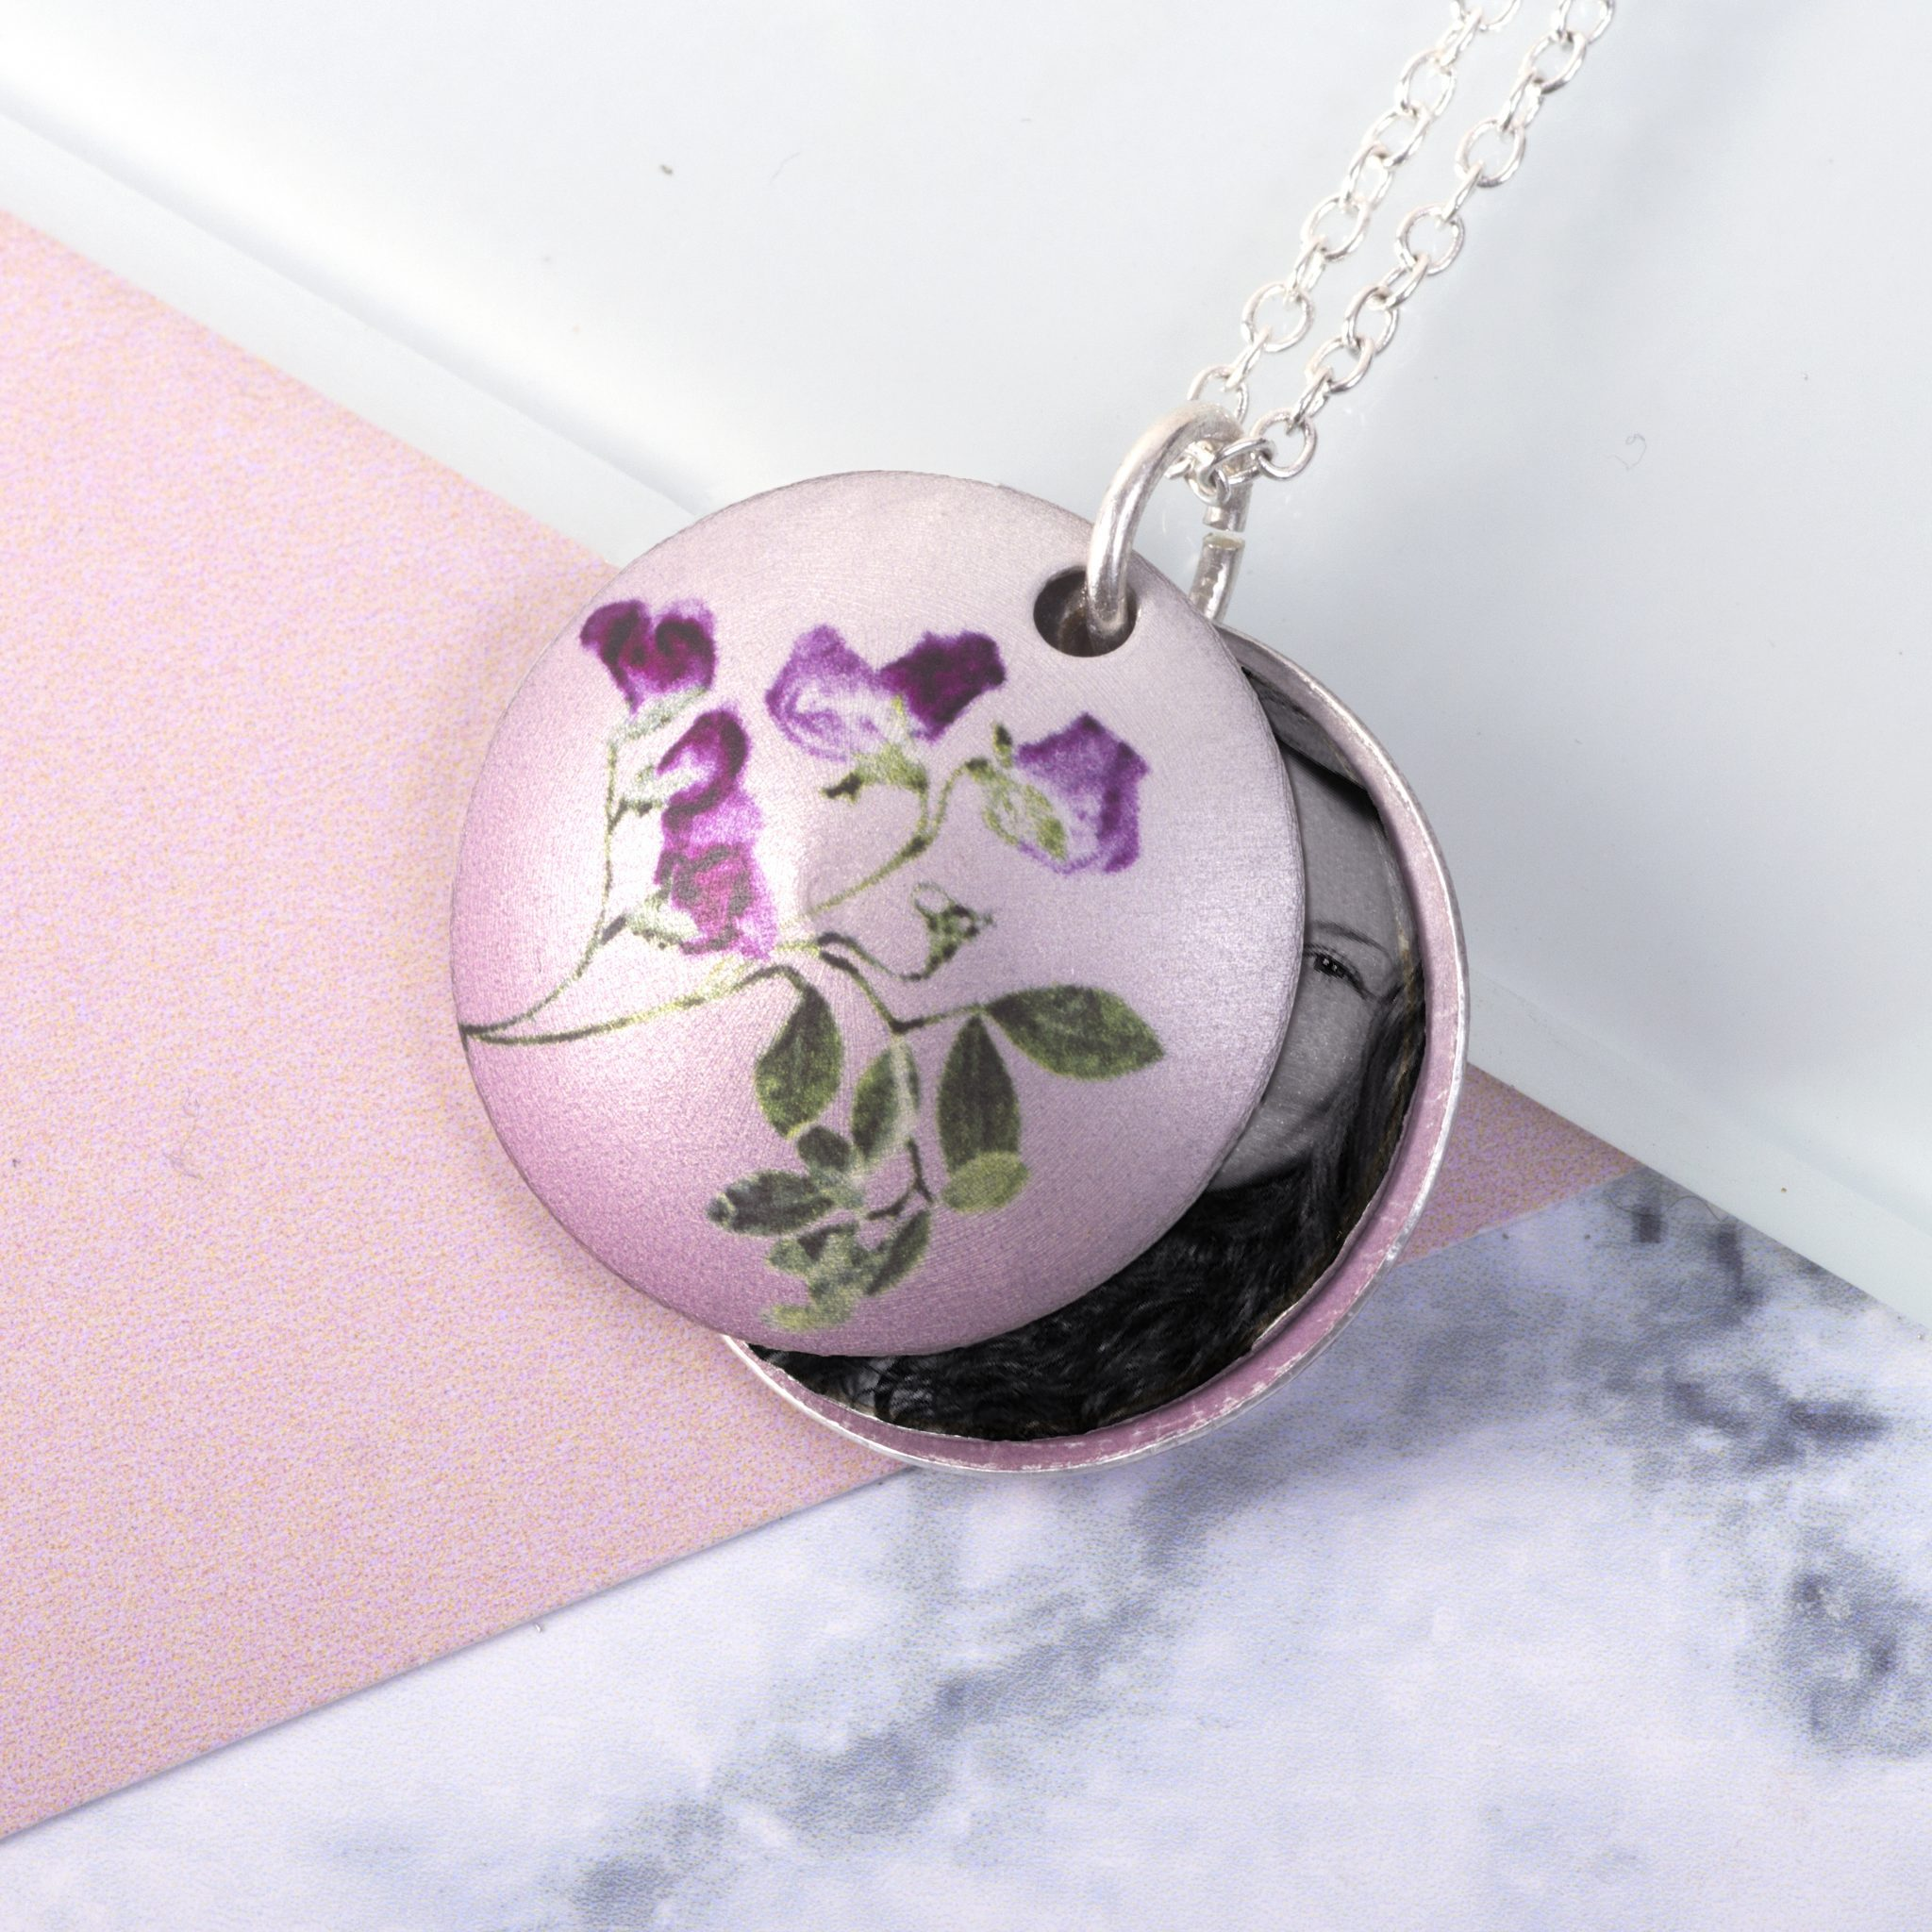 chime beautiful silver pattern ball jewellery bola little balls collections necklace lockets flower harmony locket pretty